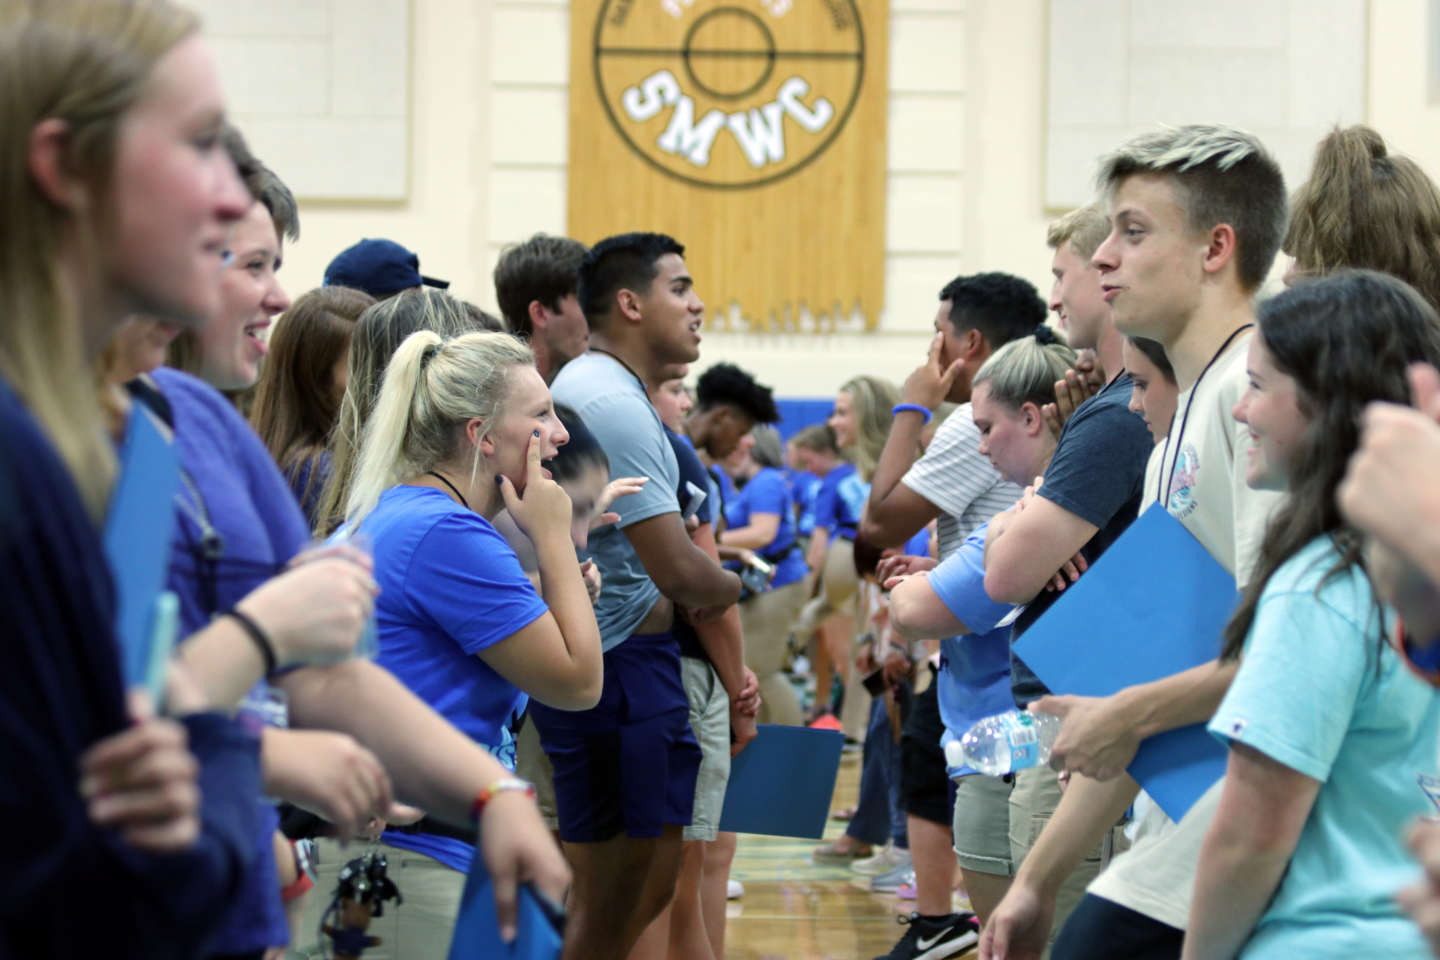 Students doing ice breaker at orientation 2019